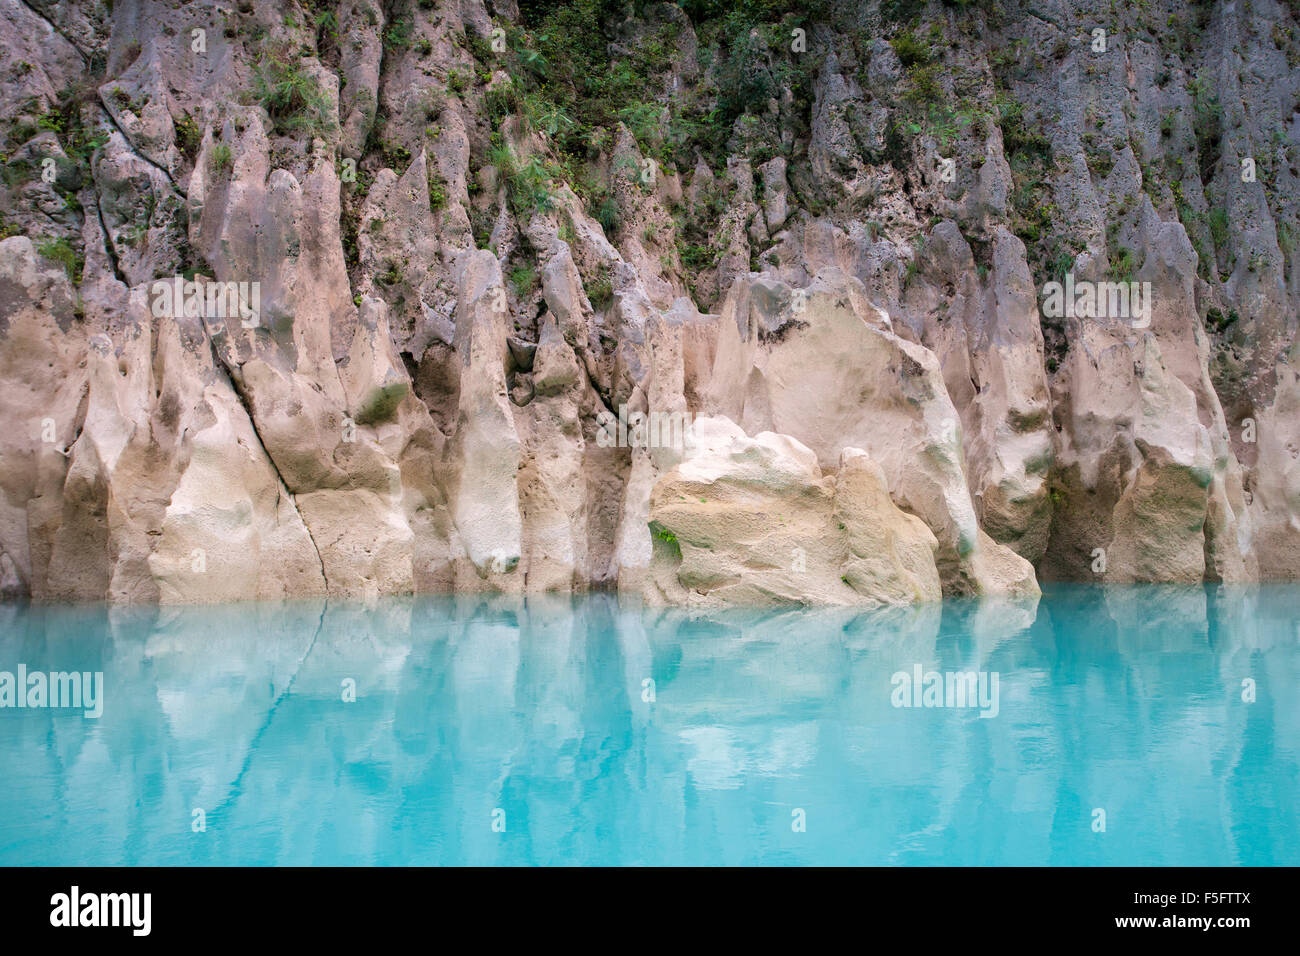 Turquoise color of the Tampaon River contrasts with rock formations in the Huasteca Potosina near Tamul Waterfalls, - Stock Image